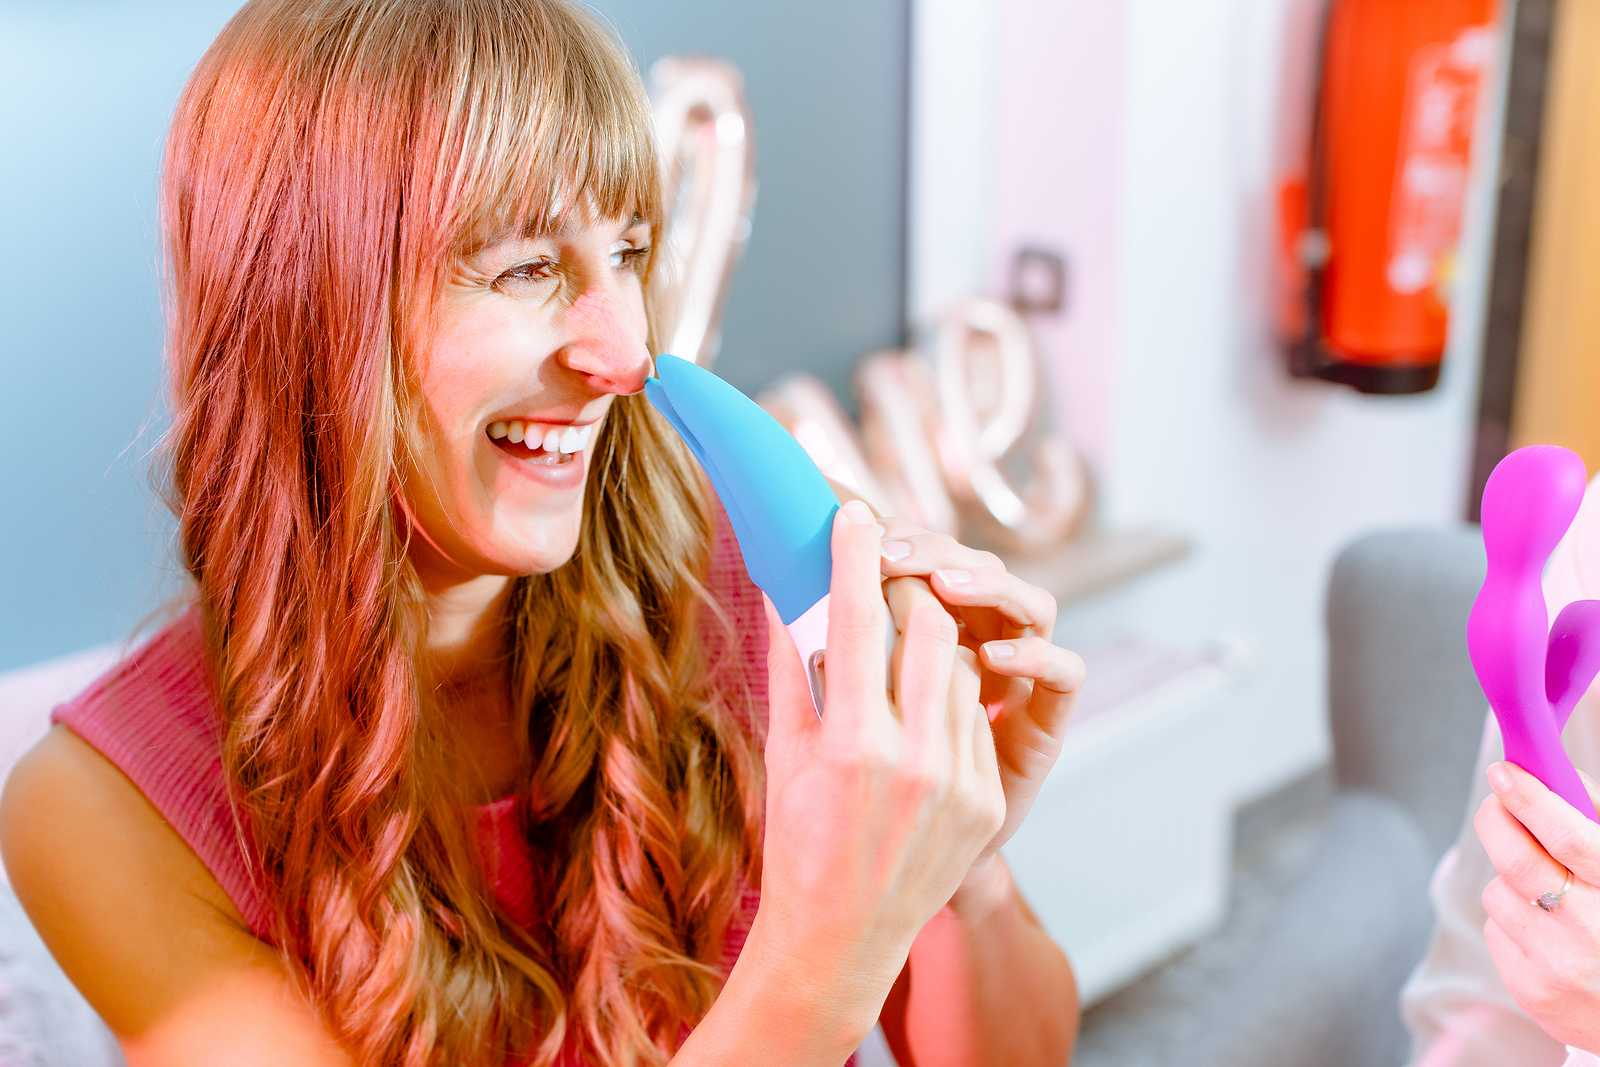 Woman asking saleslady for details of dildo and other adult toys